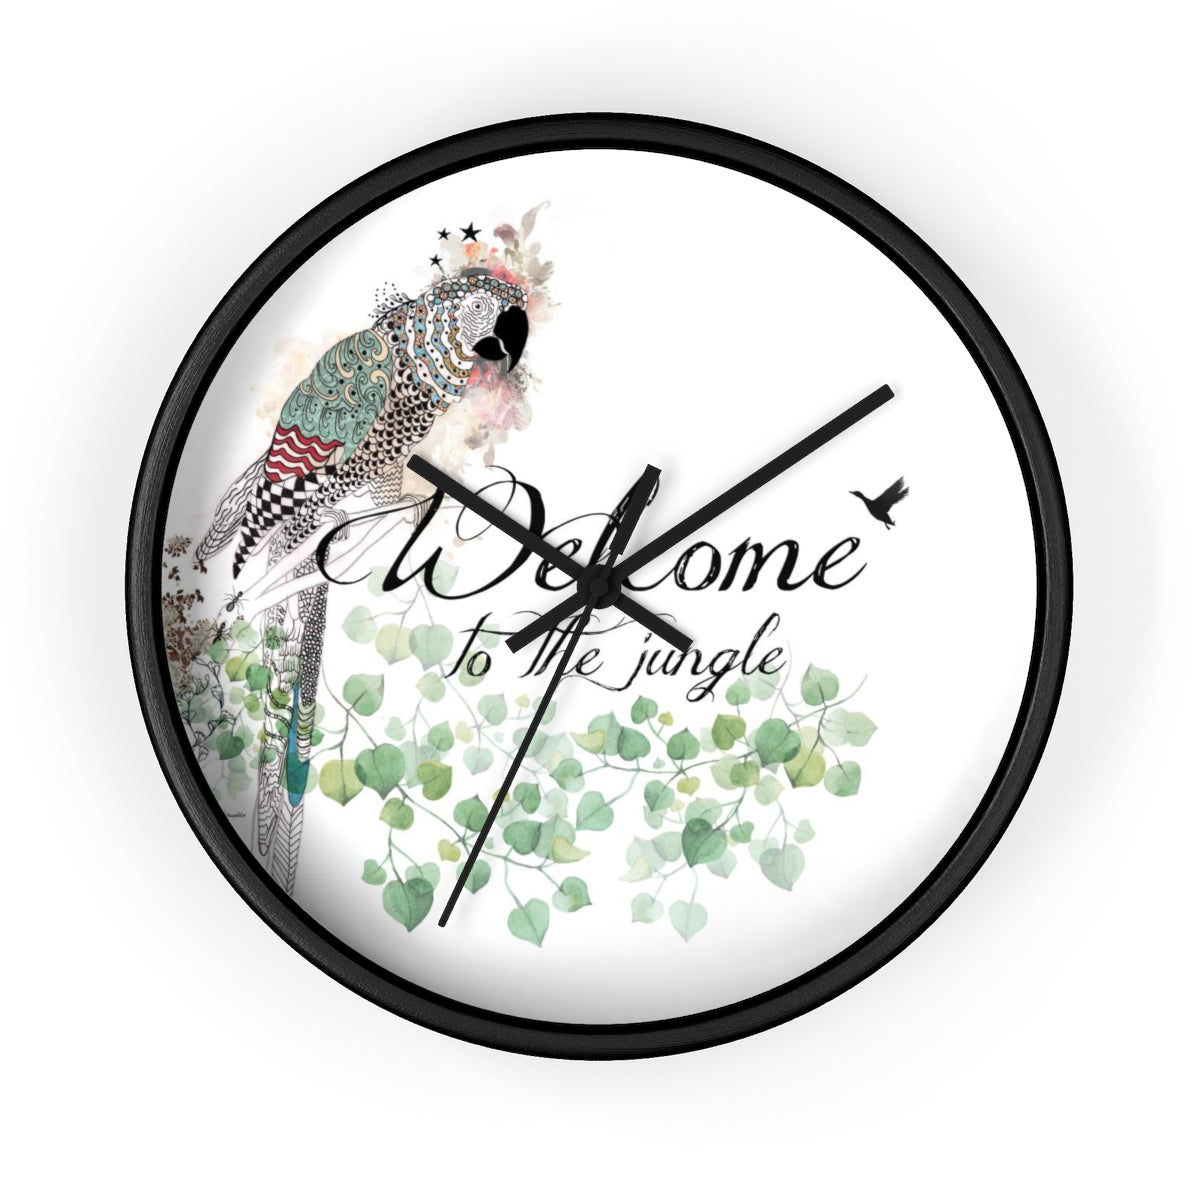 Parrot round clock with a black frame - Liz Kapiloto Art & Design